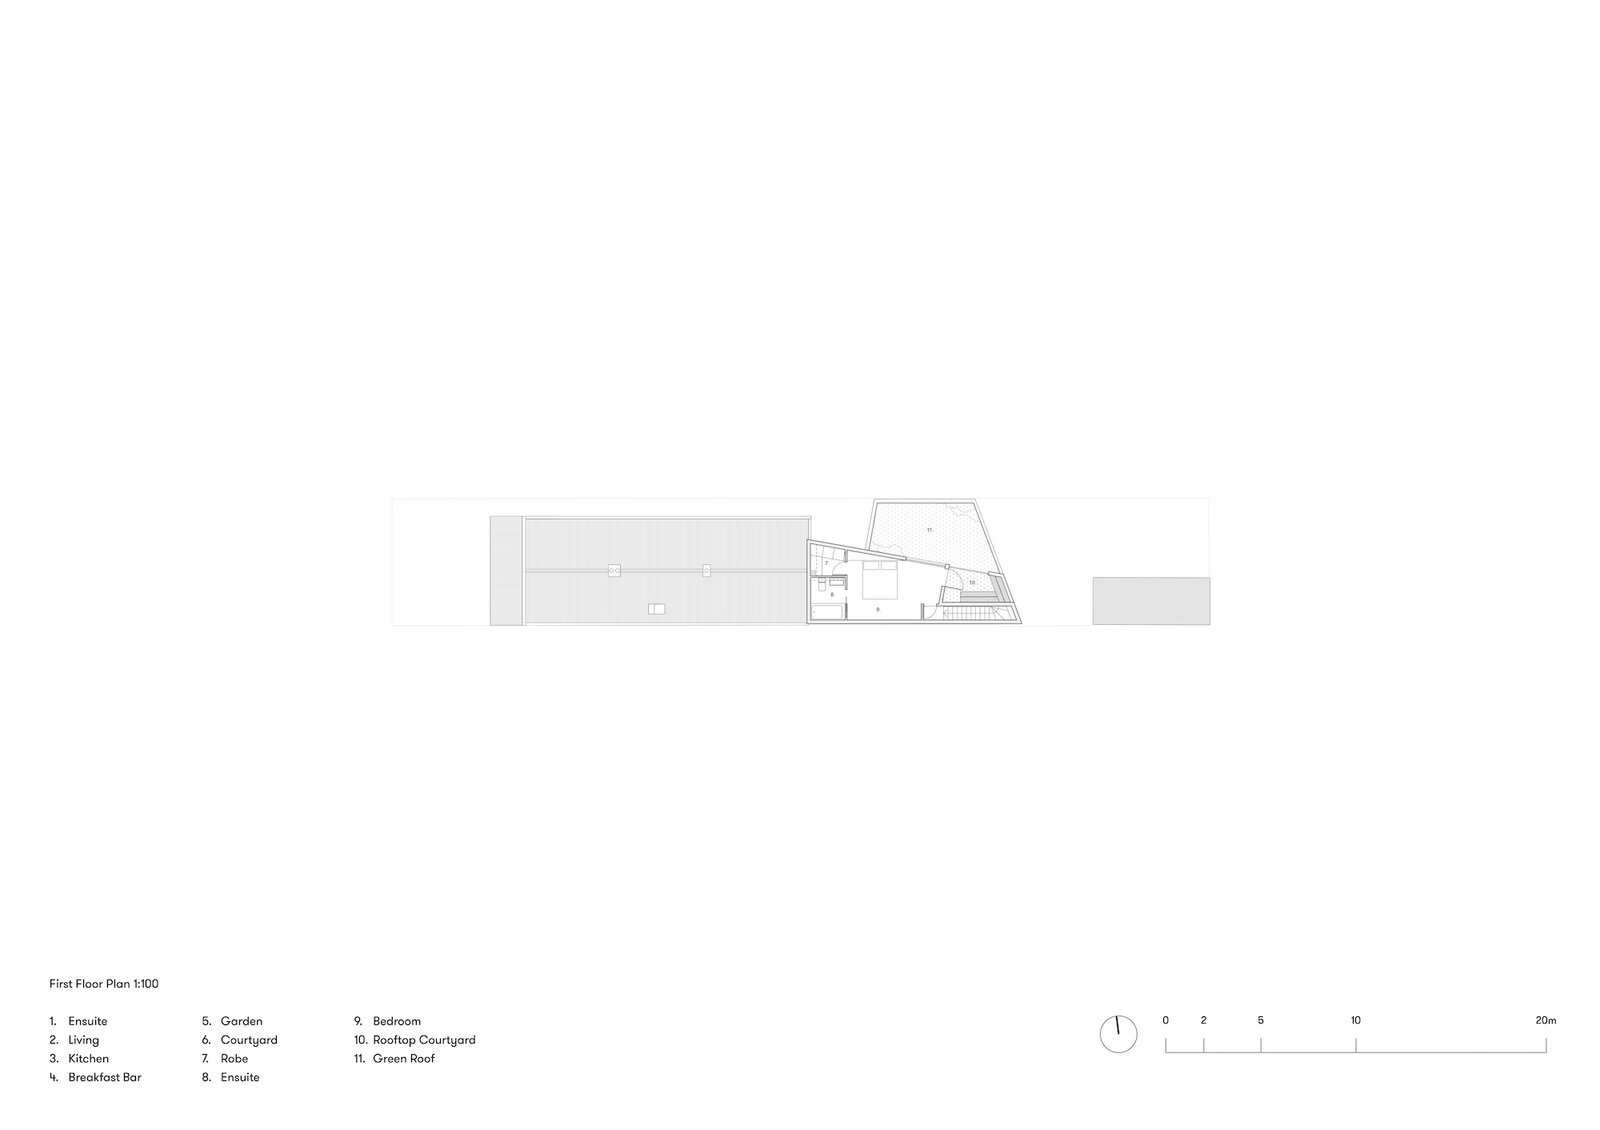 First floor plan of Terrace House 1 by Dreamer